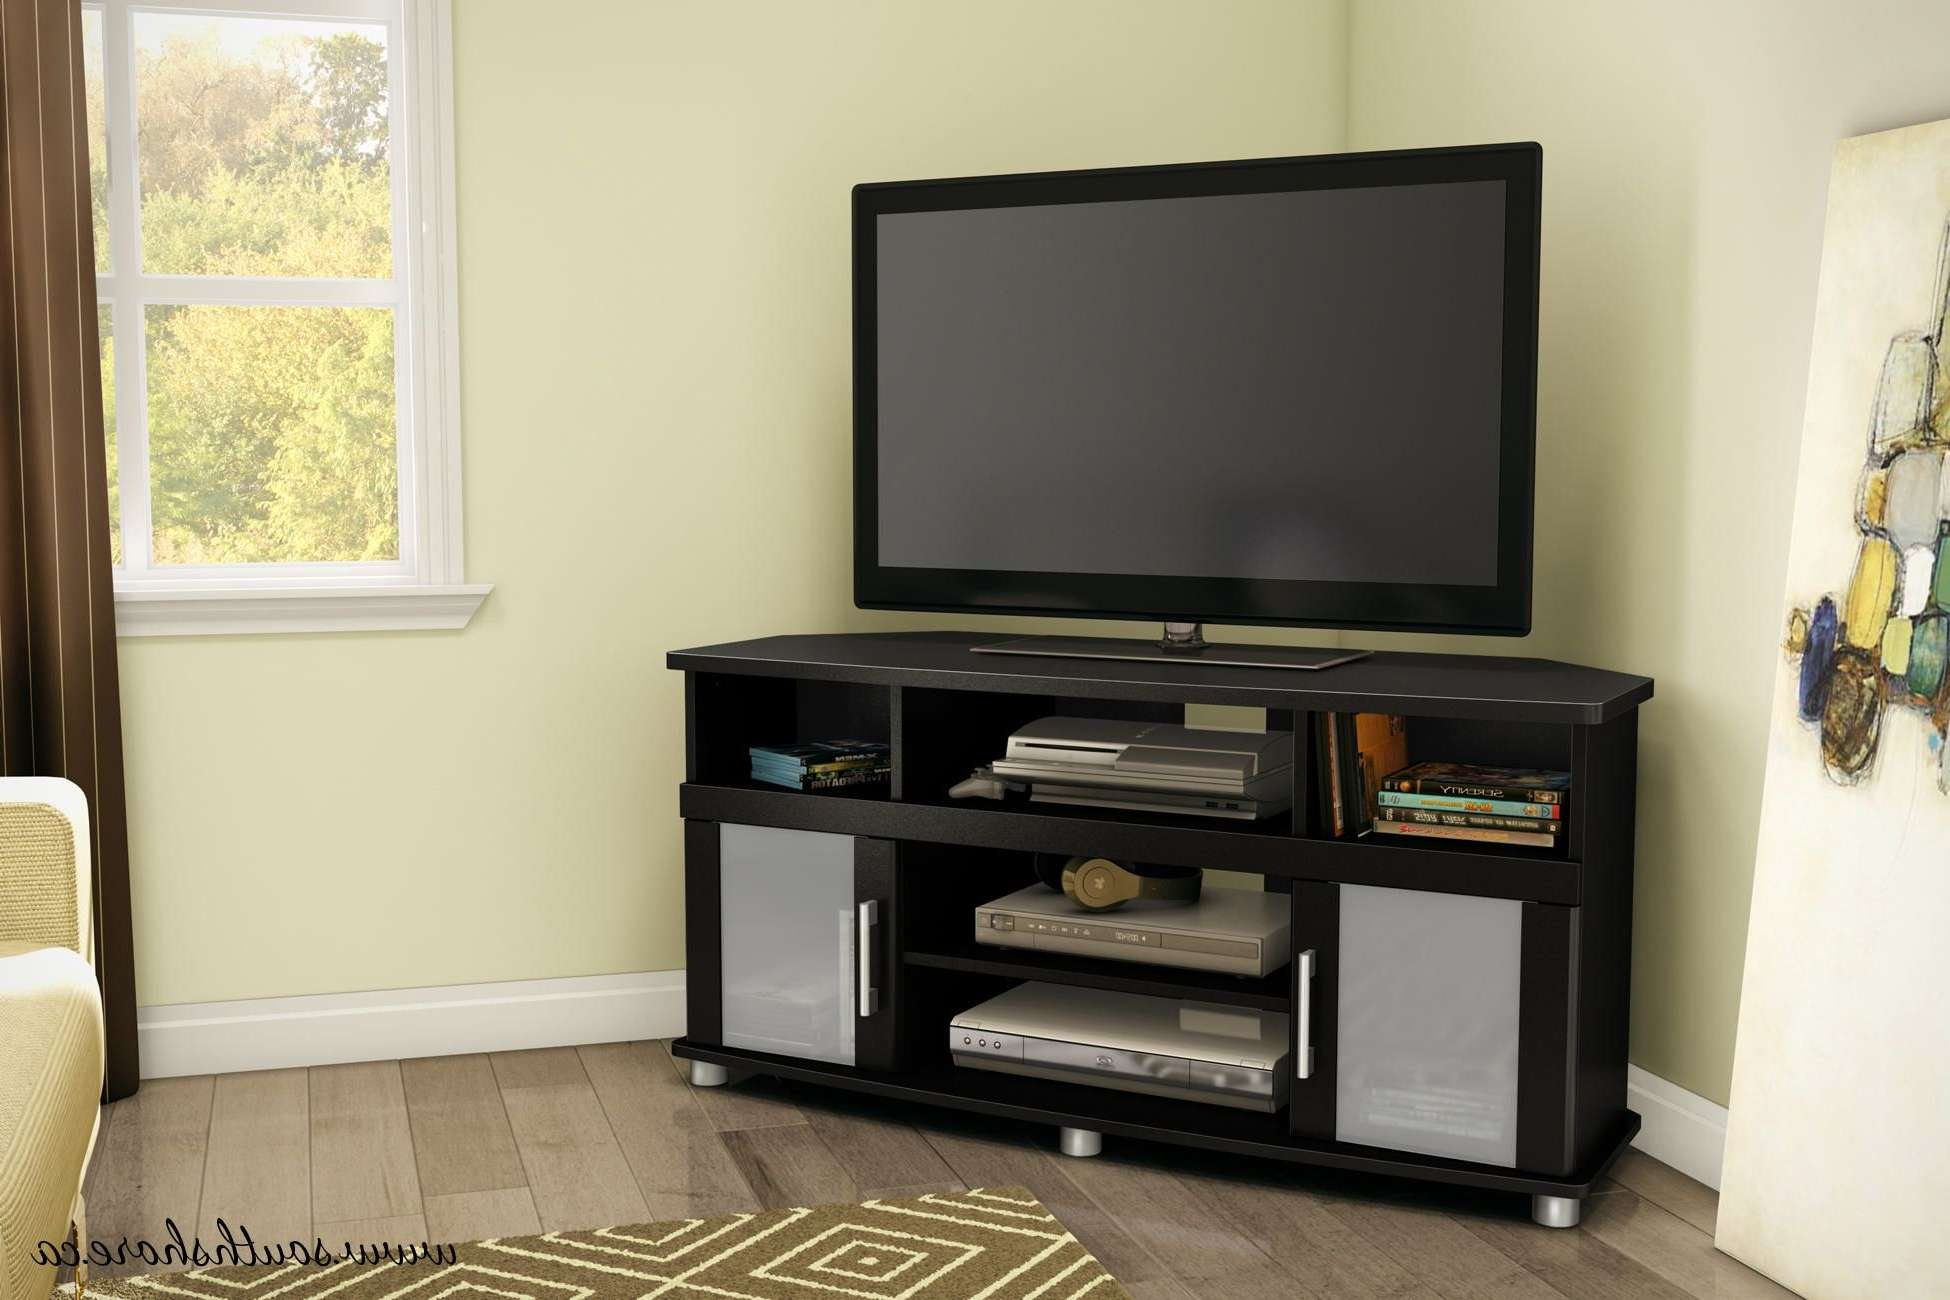 South Shore City Life Corner Tv Stand, For Tvs Up To 50 Inches Regarding Corner Tv Stands (View 14 of 15)